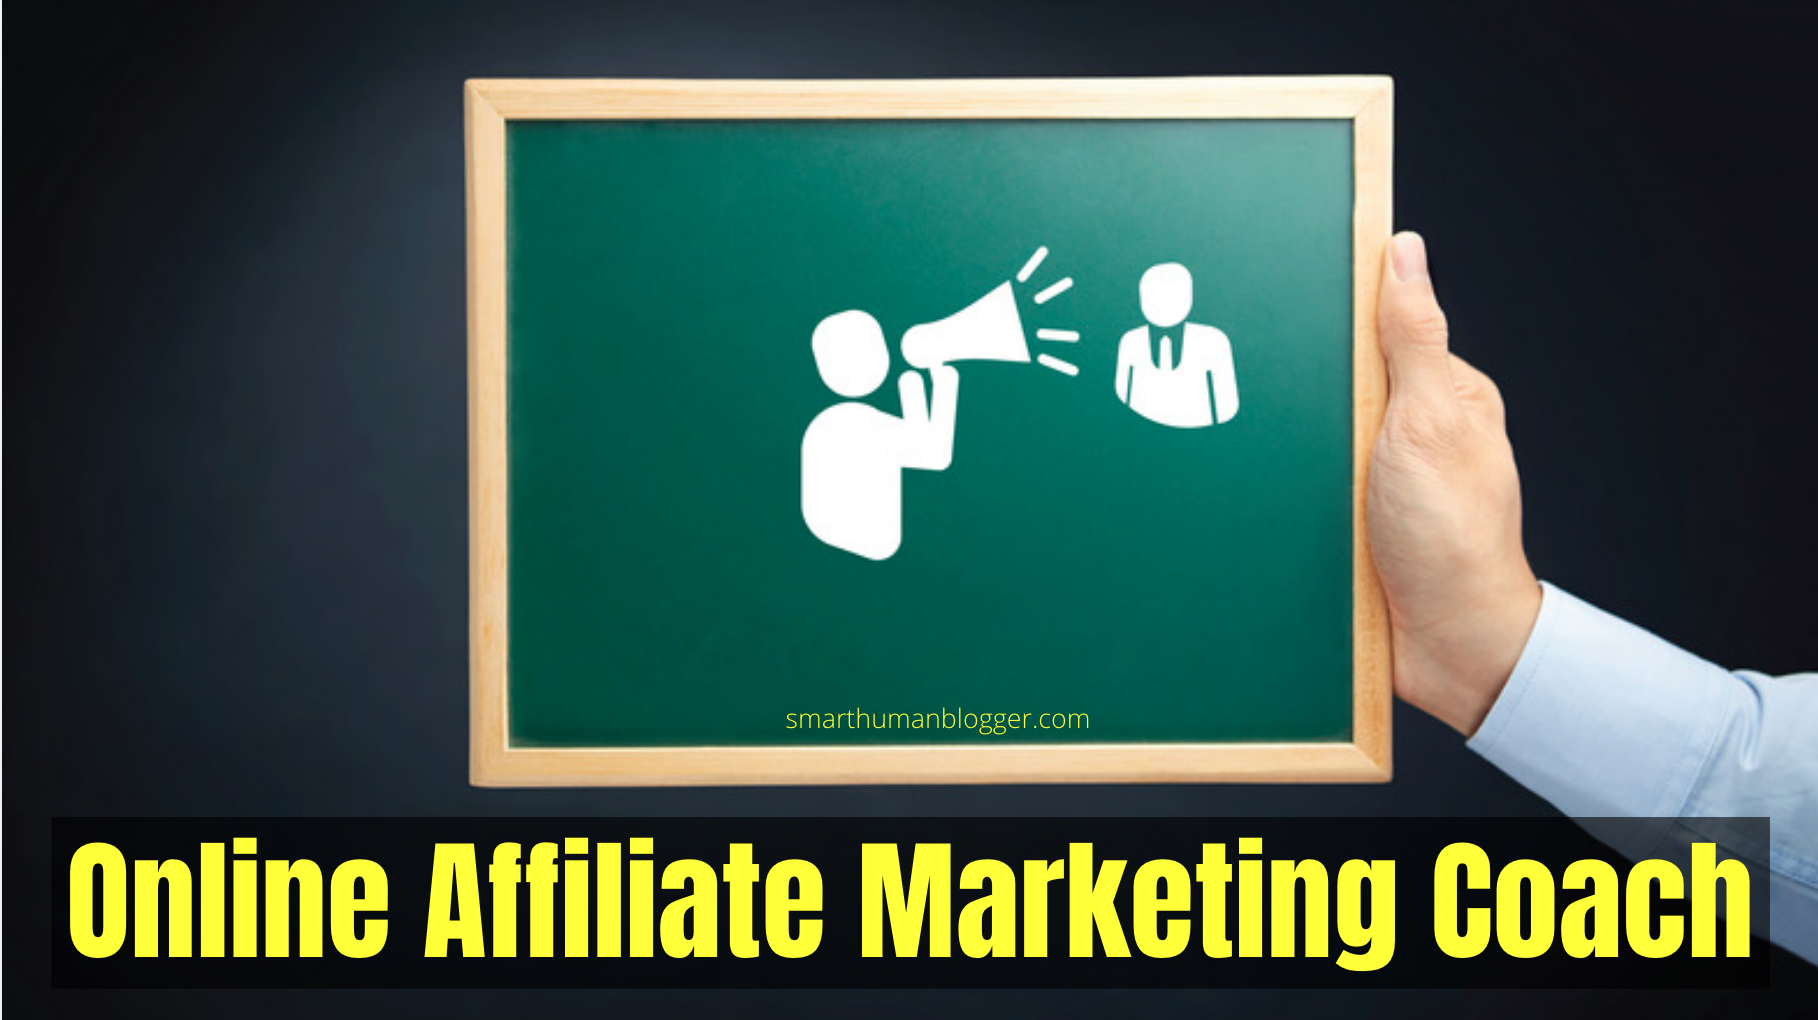 Online Affiliate Marketing Coach